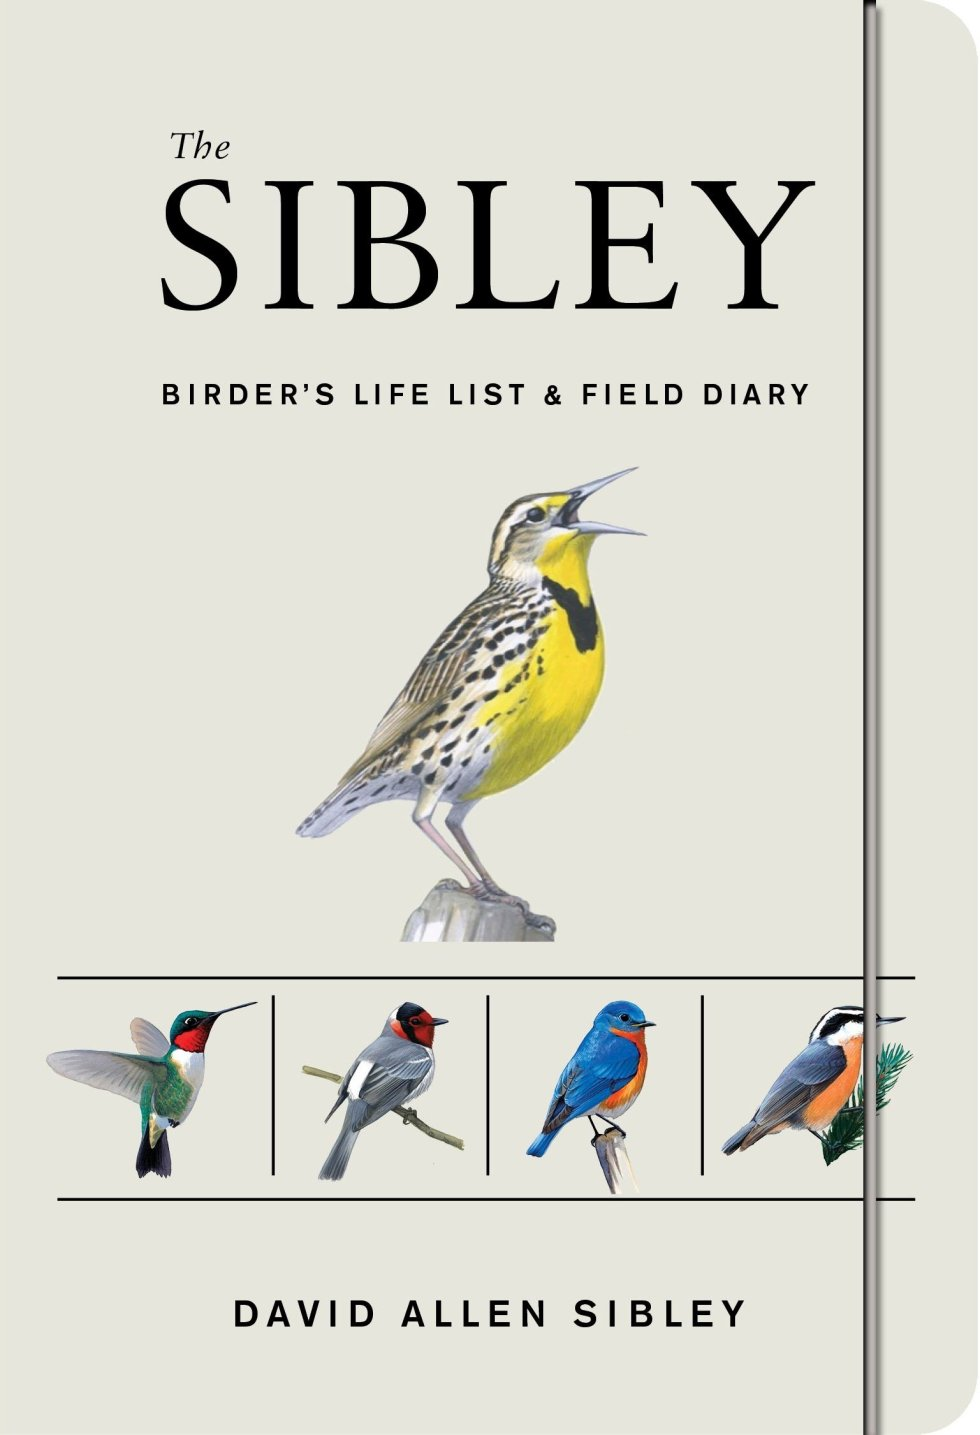 The Sibley Birders Life List and Field Diary for birding